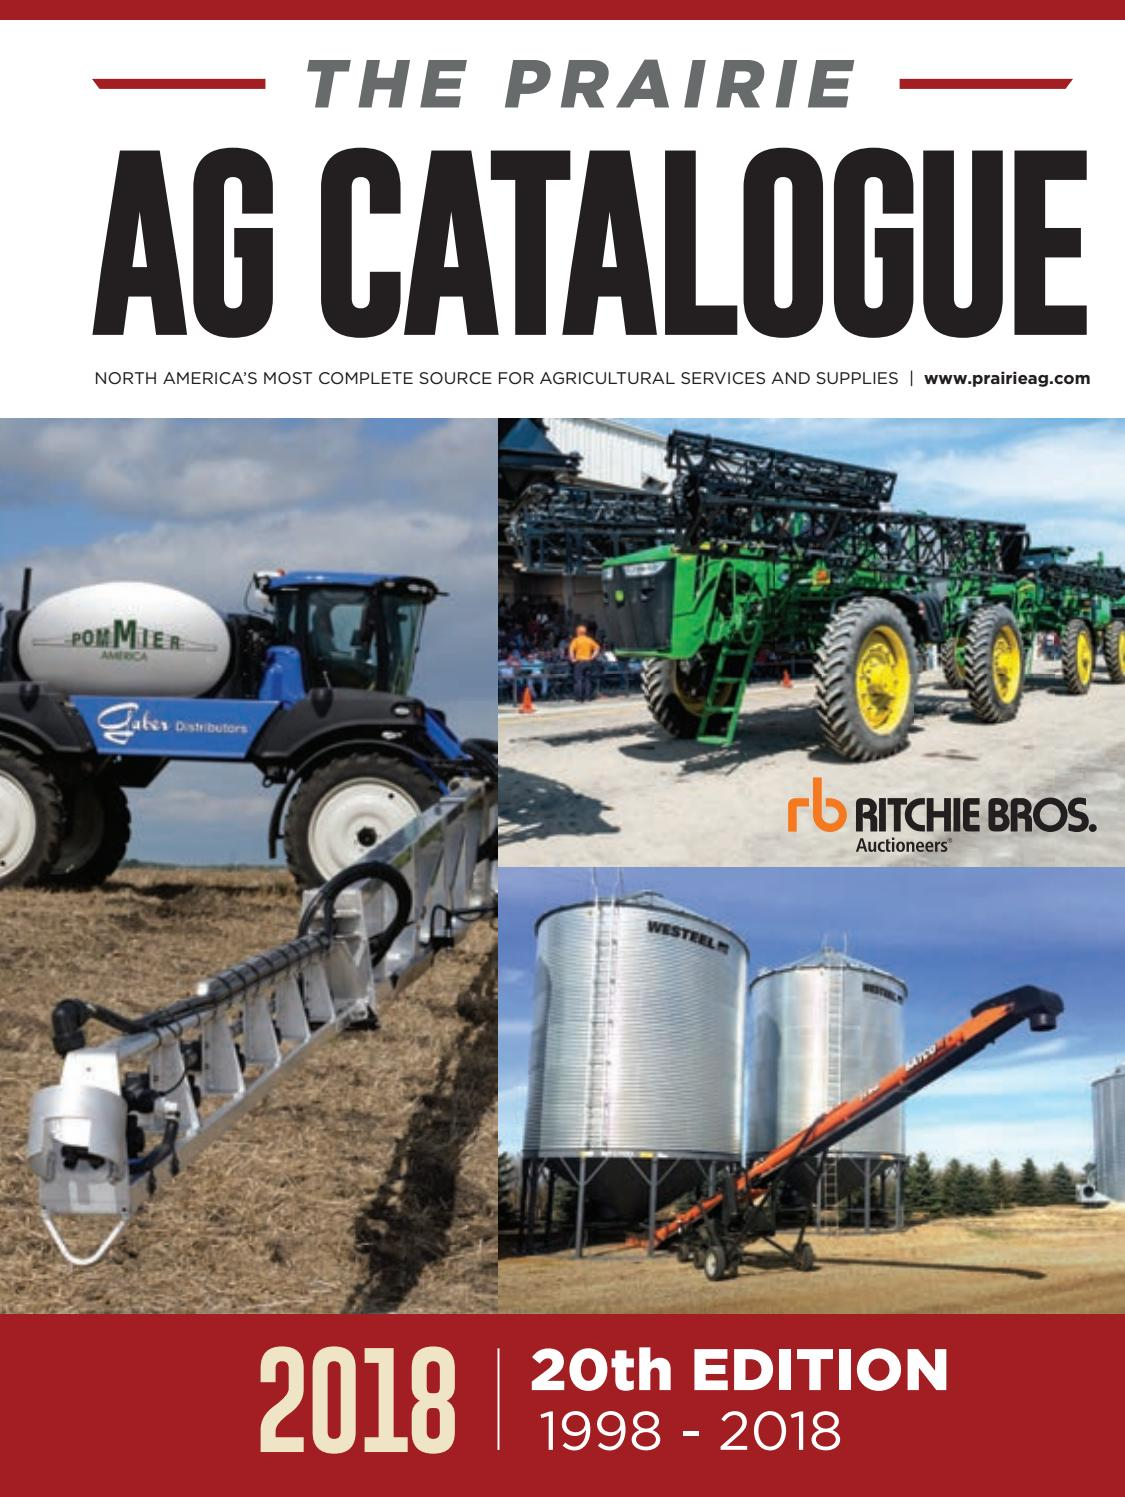 Prairie Ag Catalogue Usa By Farm Business Communications Issuu Summit Lighting 320 Ezee Change Photocell Control Adjusta Post